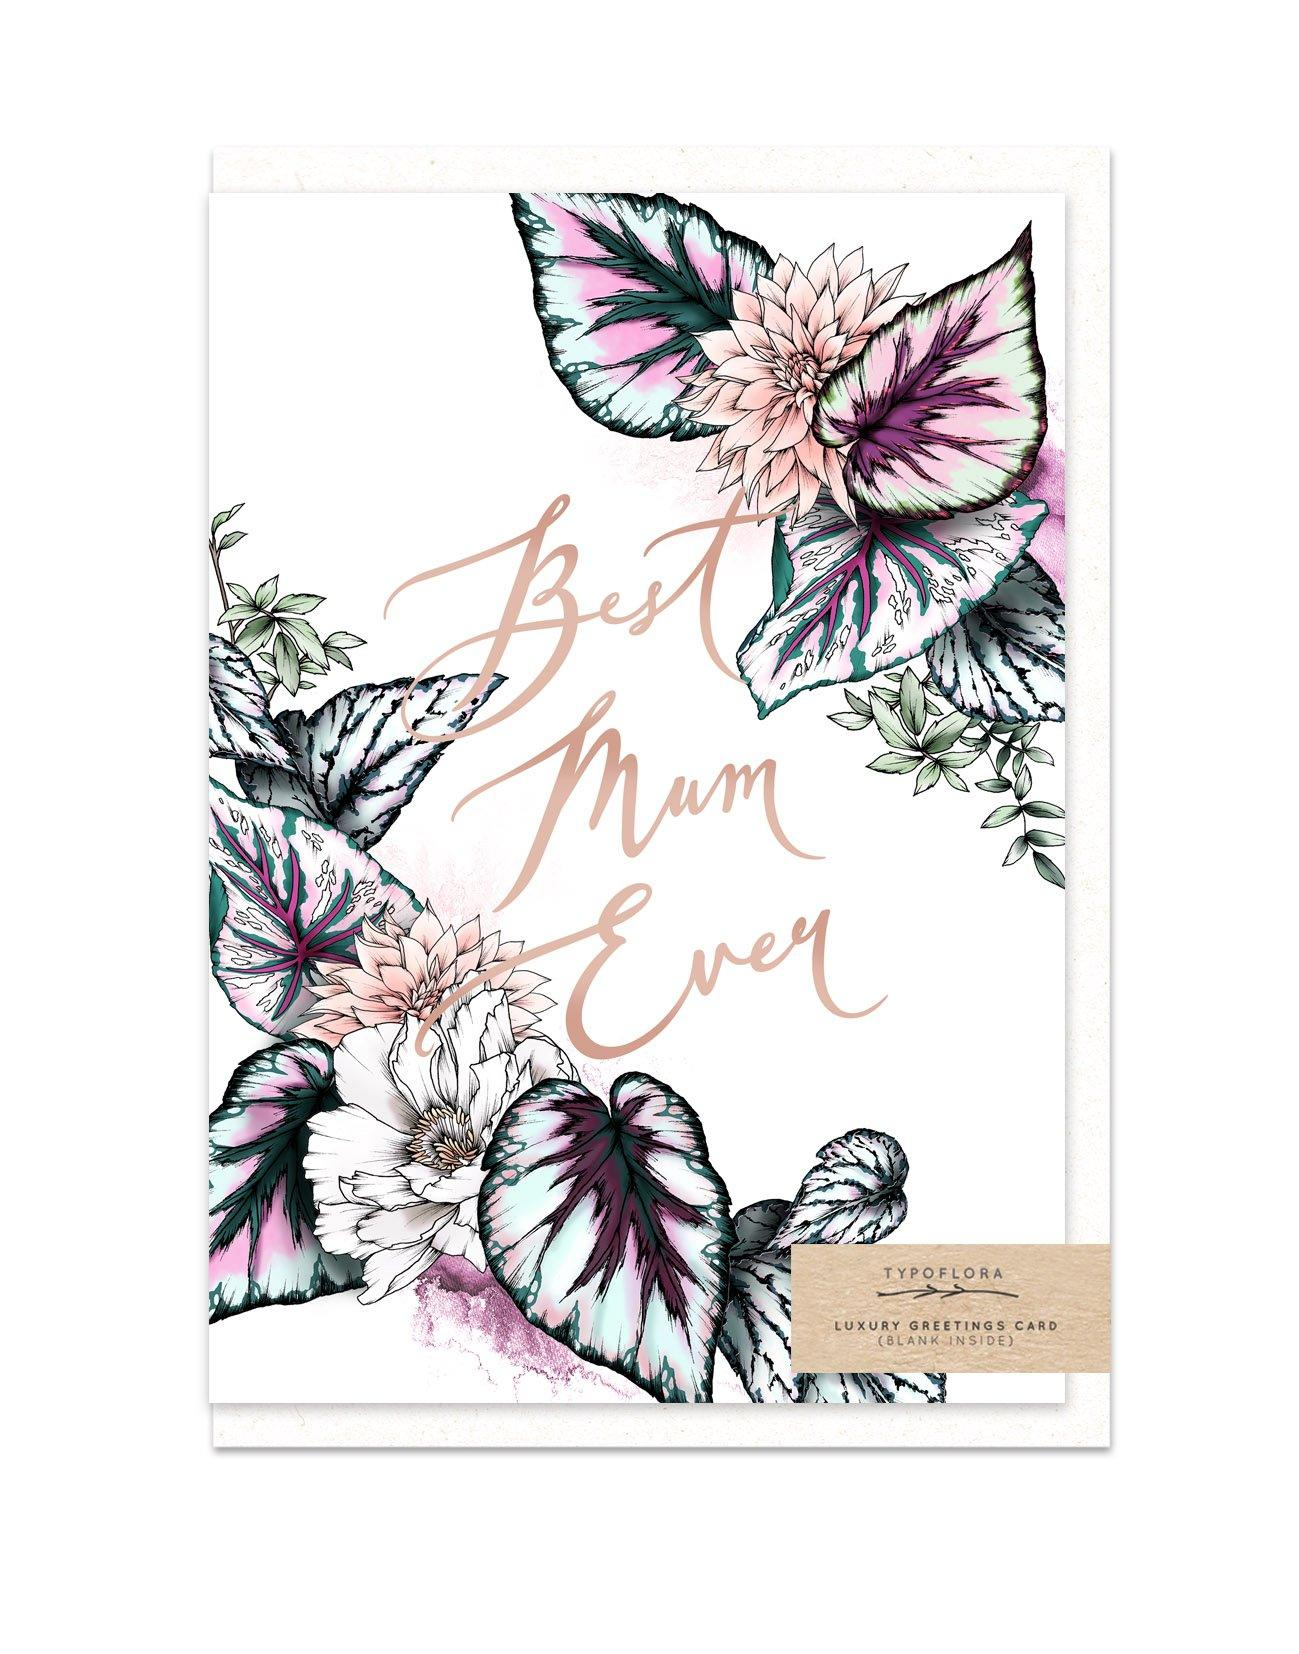 Best Mum Ever - Cards for Mothers - Typoflora - Naiise